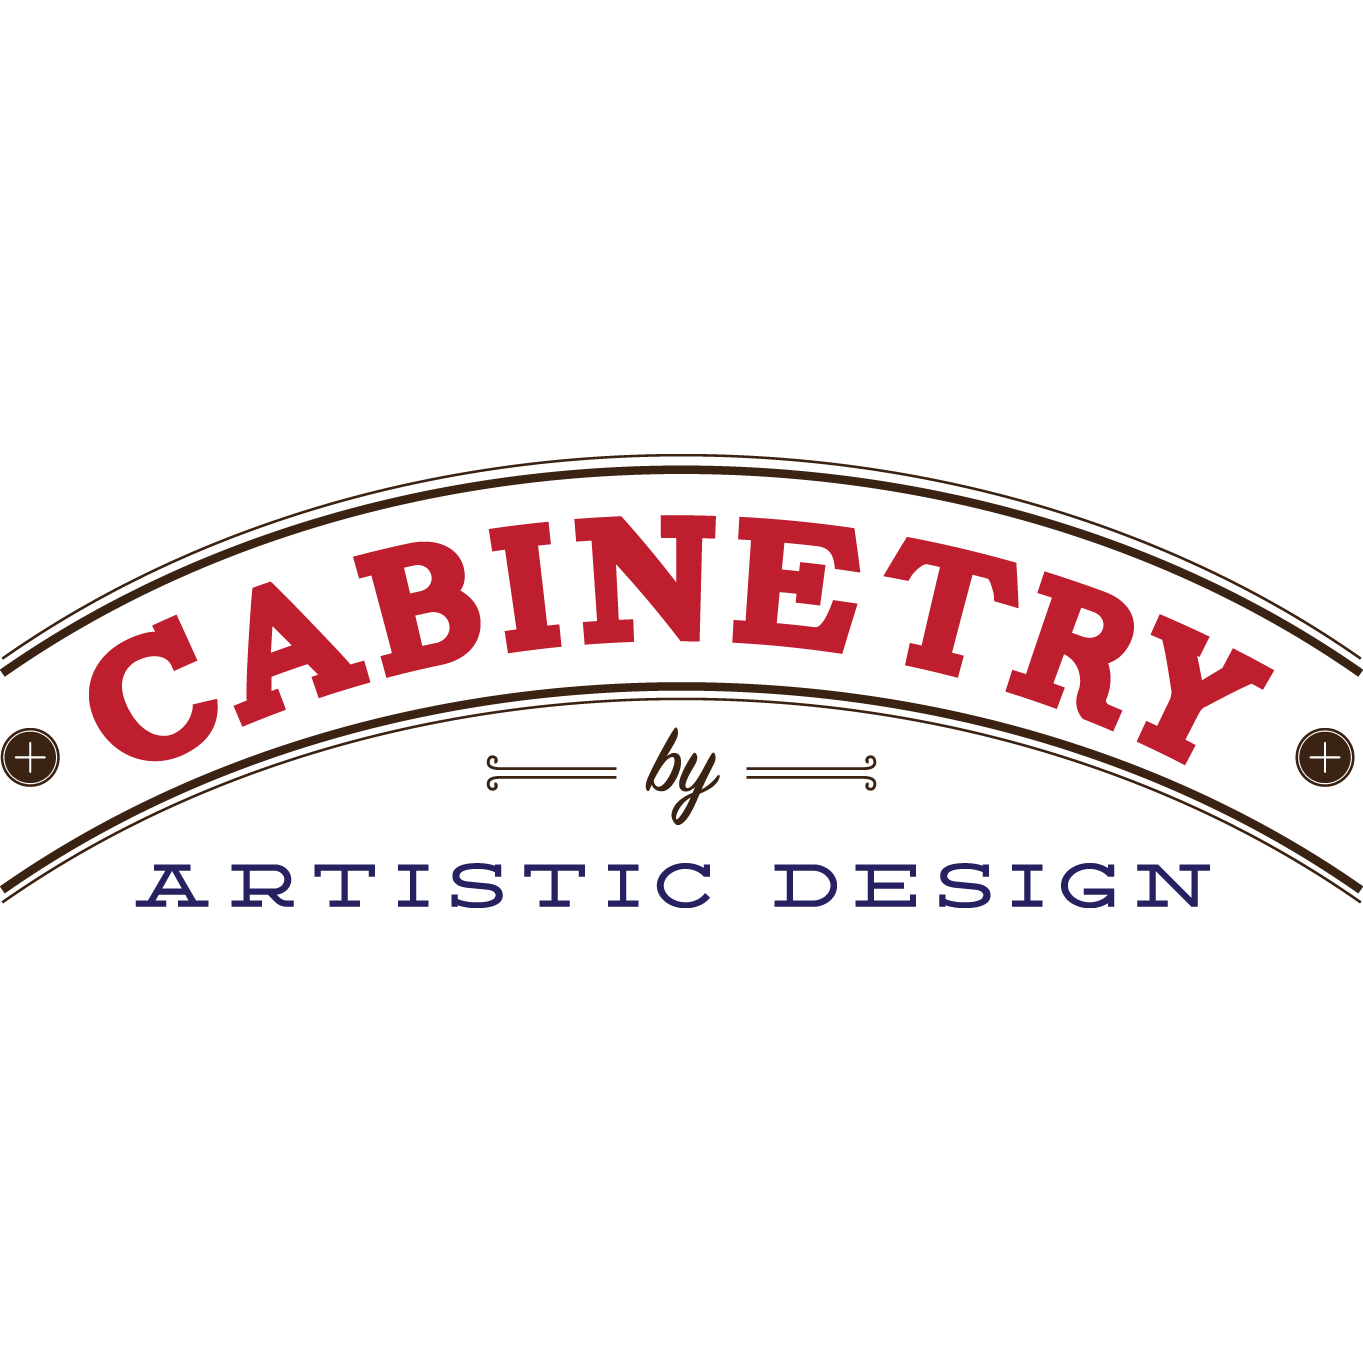 Review Of Artist Design : Cabinetry by artistic design west allis wisconsin wi